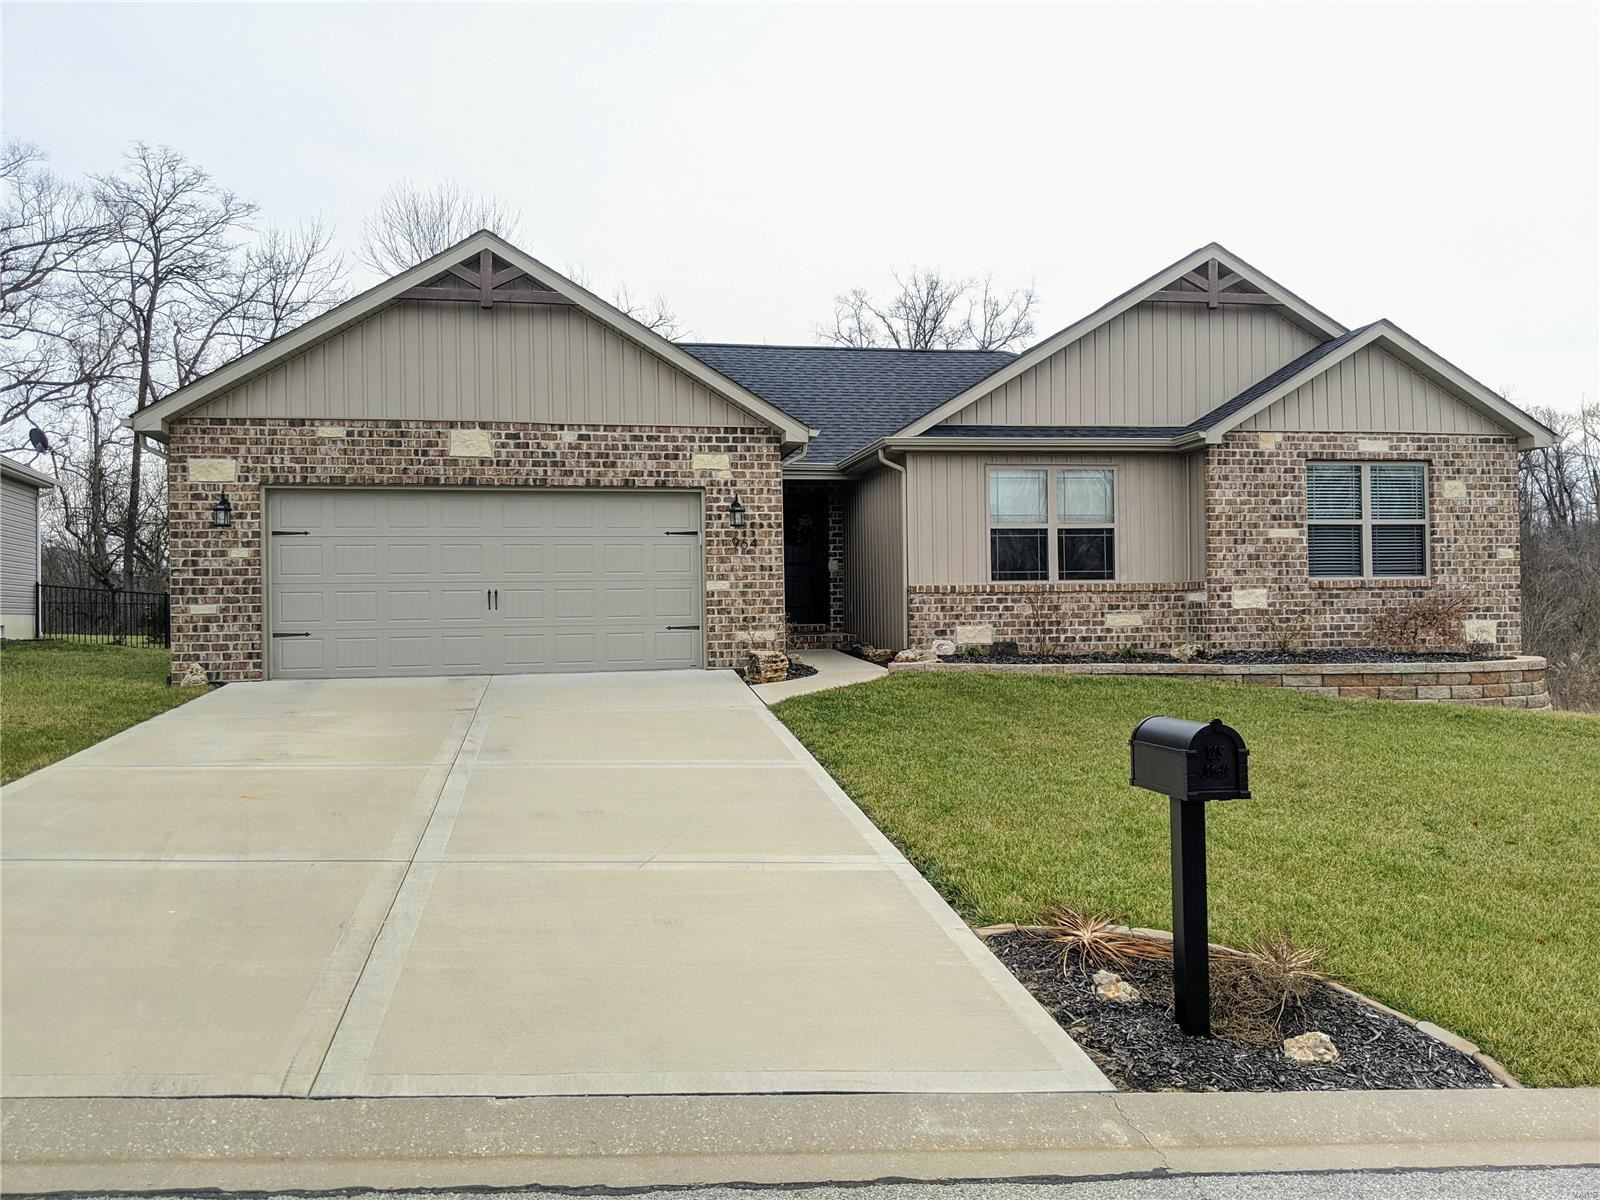 964 Half Moon Lane, Caseyville, IL 62232 - MLS#: 20000117